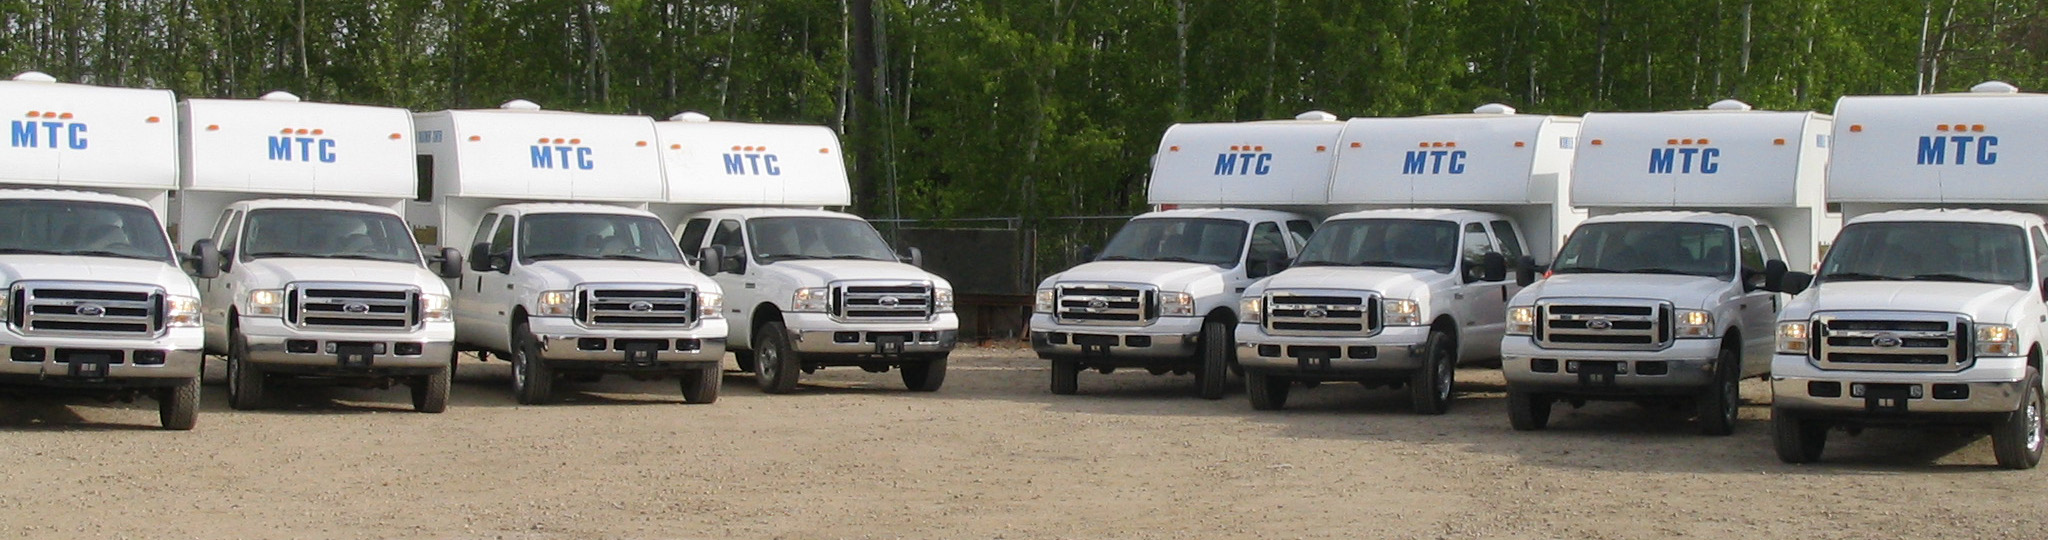 MTC's Stand-by and Emergency Response Medical Services